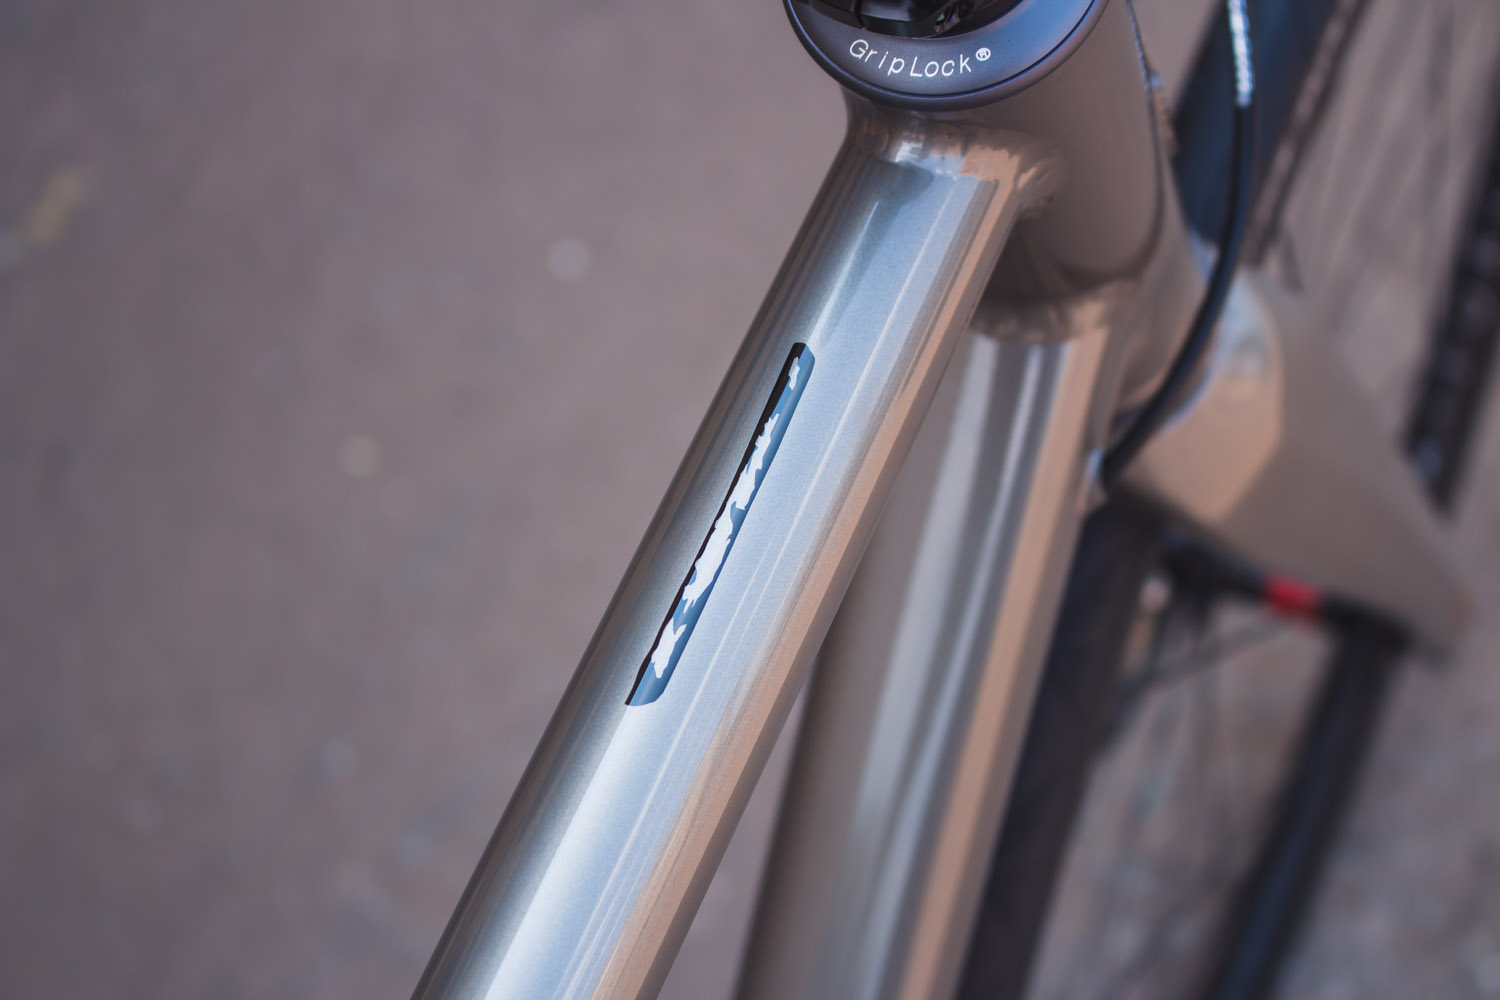 quirk_cycles_rich_mallet_road_02.jpg